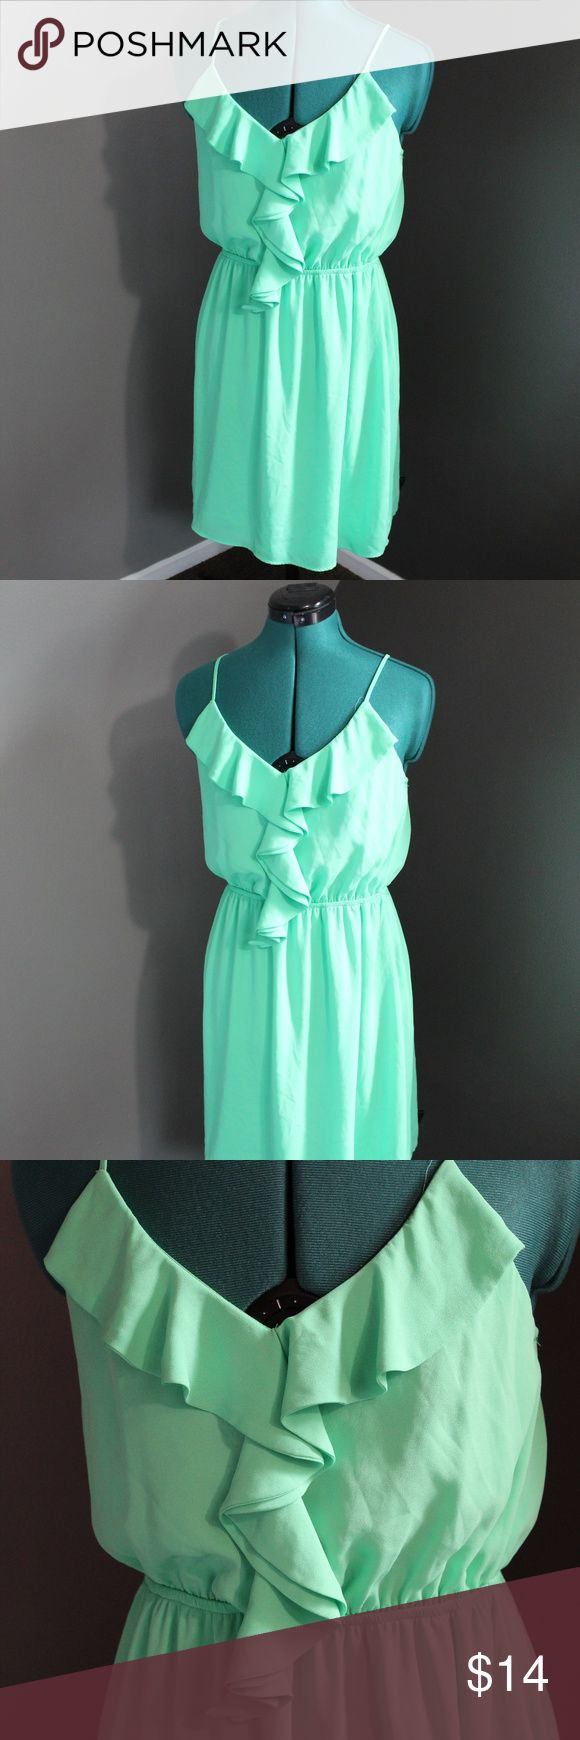 Size medium summer dress Green summer dress size medium. Excellent condition!  18 inches at bust.  BUY THREE GET ONE FREE DEAL. (Choose 4 items, only pay for three) Free item is lowest price item in bundle. Dresses